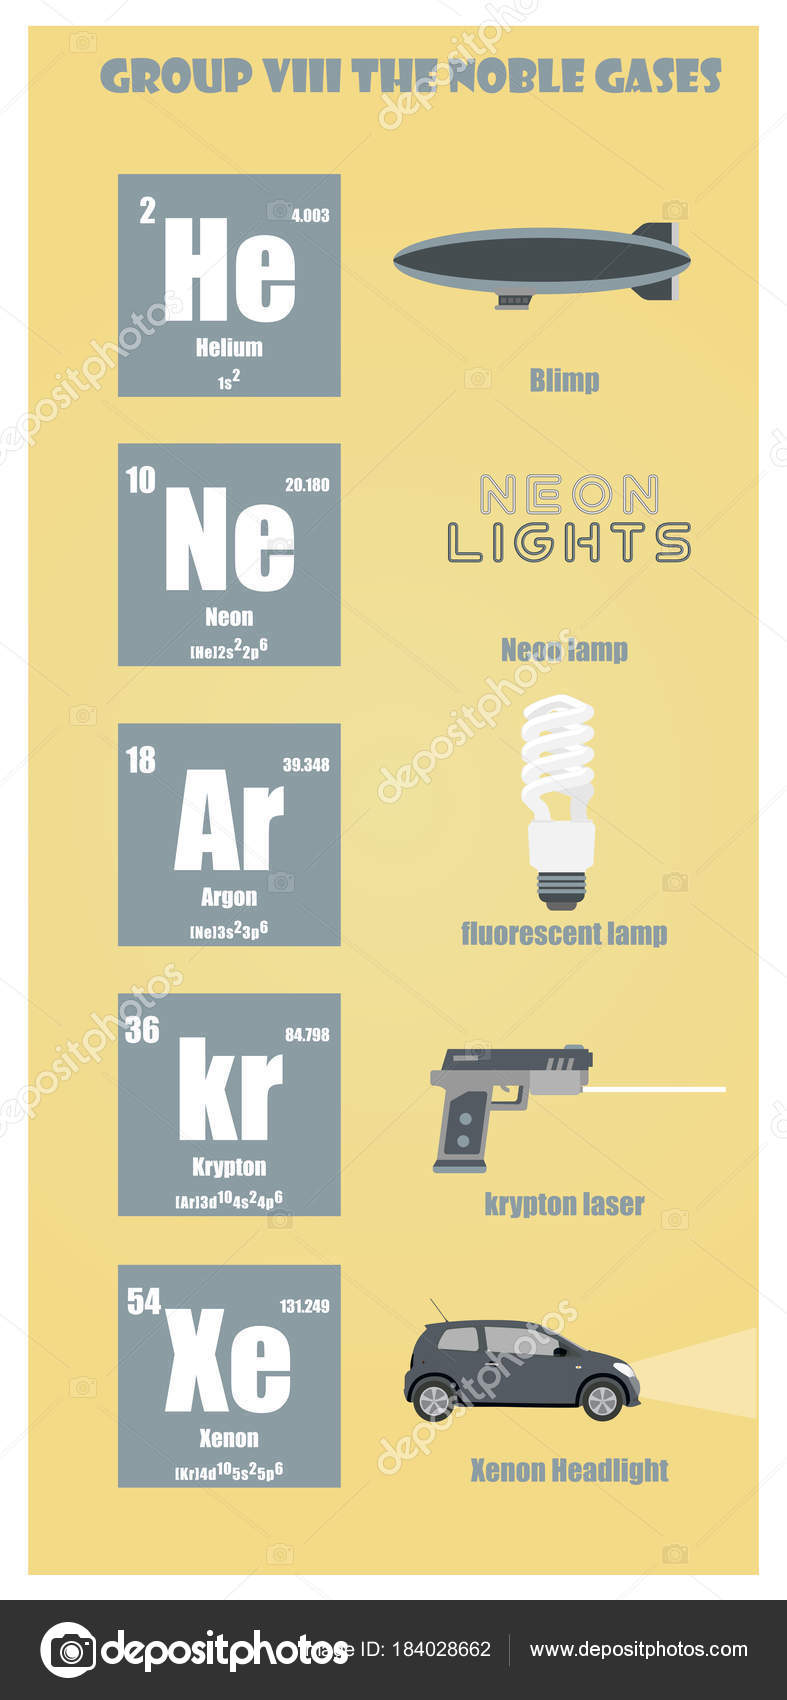 Periodic table element group viii noble gases stock vector periodic table element group viii noble gases stock vector urtaz Image collections